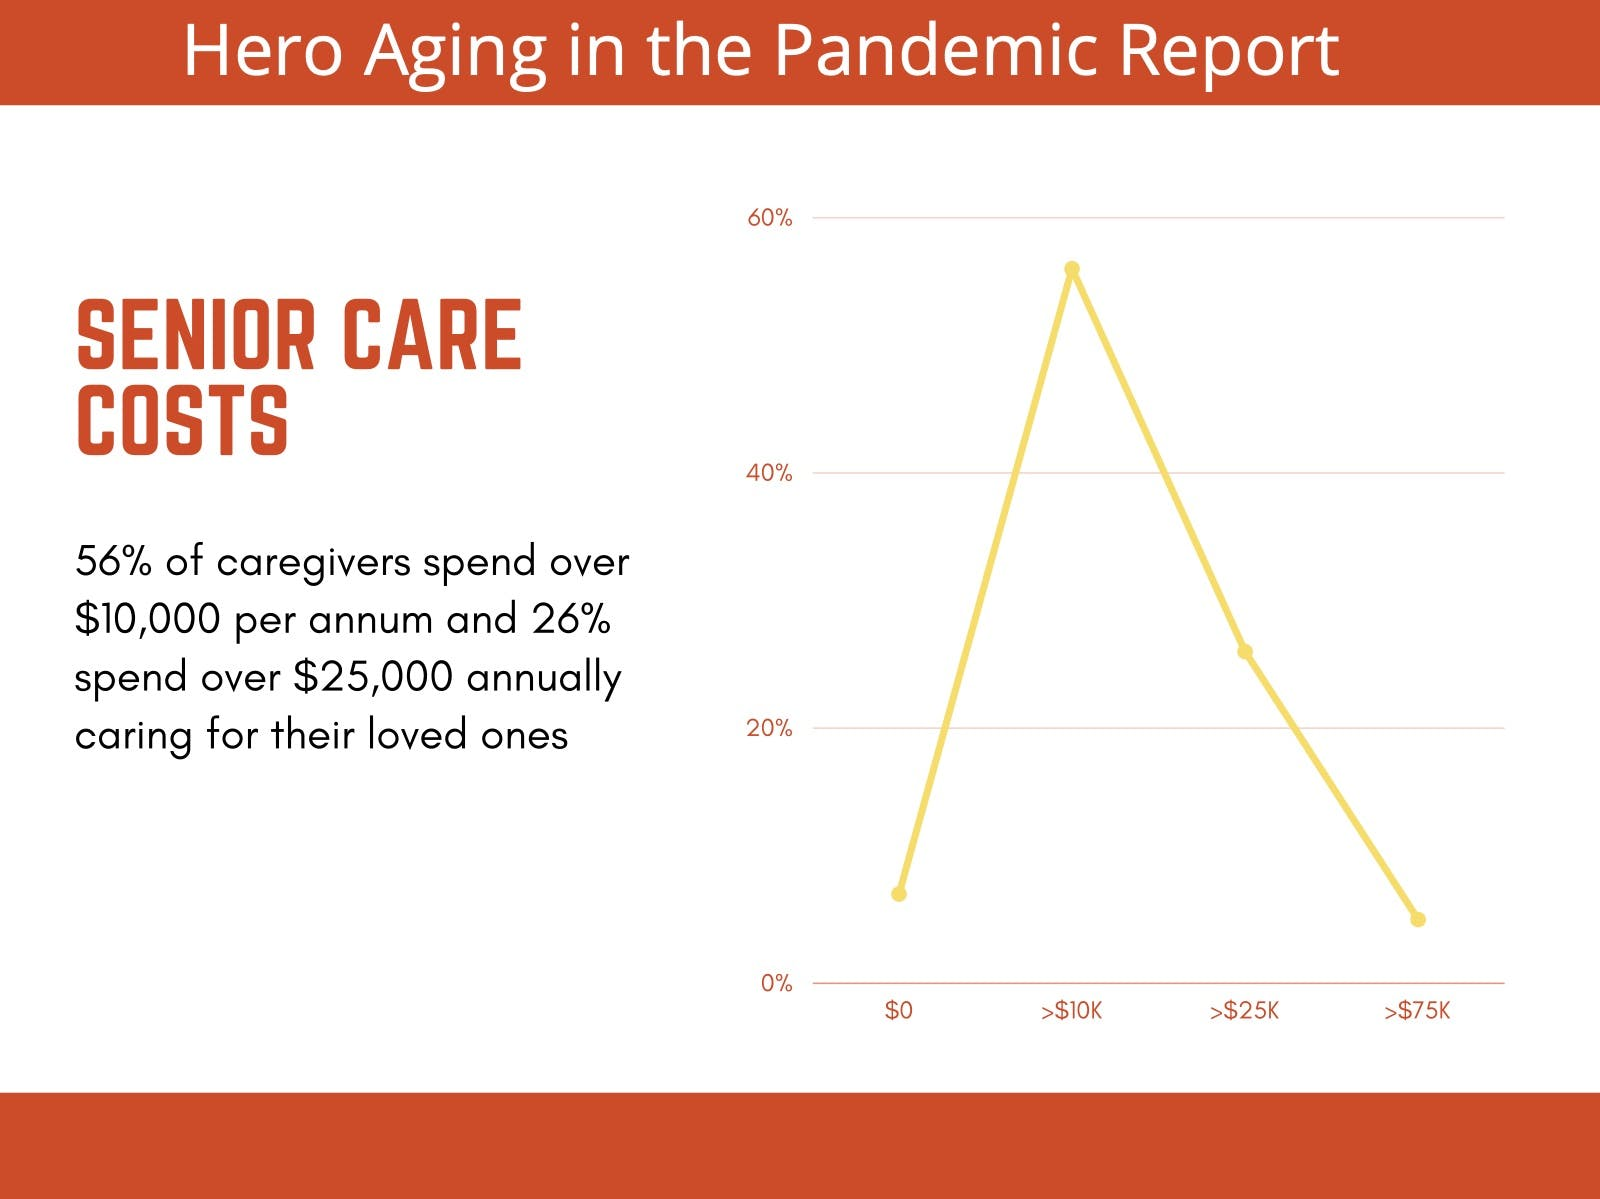 A line chart showing that 56% of caregivers spend over $10,000 per annum and 26% spend over $25,000 annually caring for their loved one